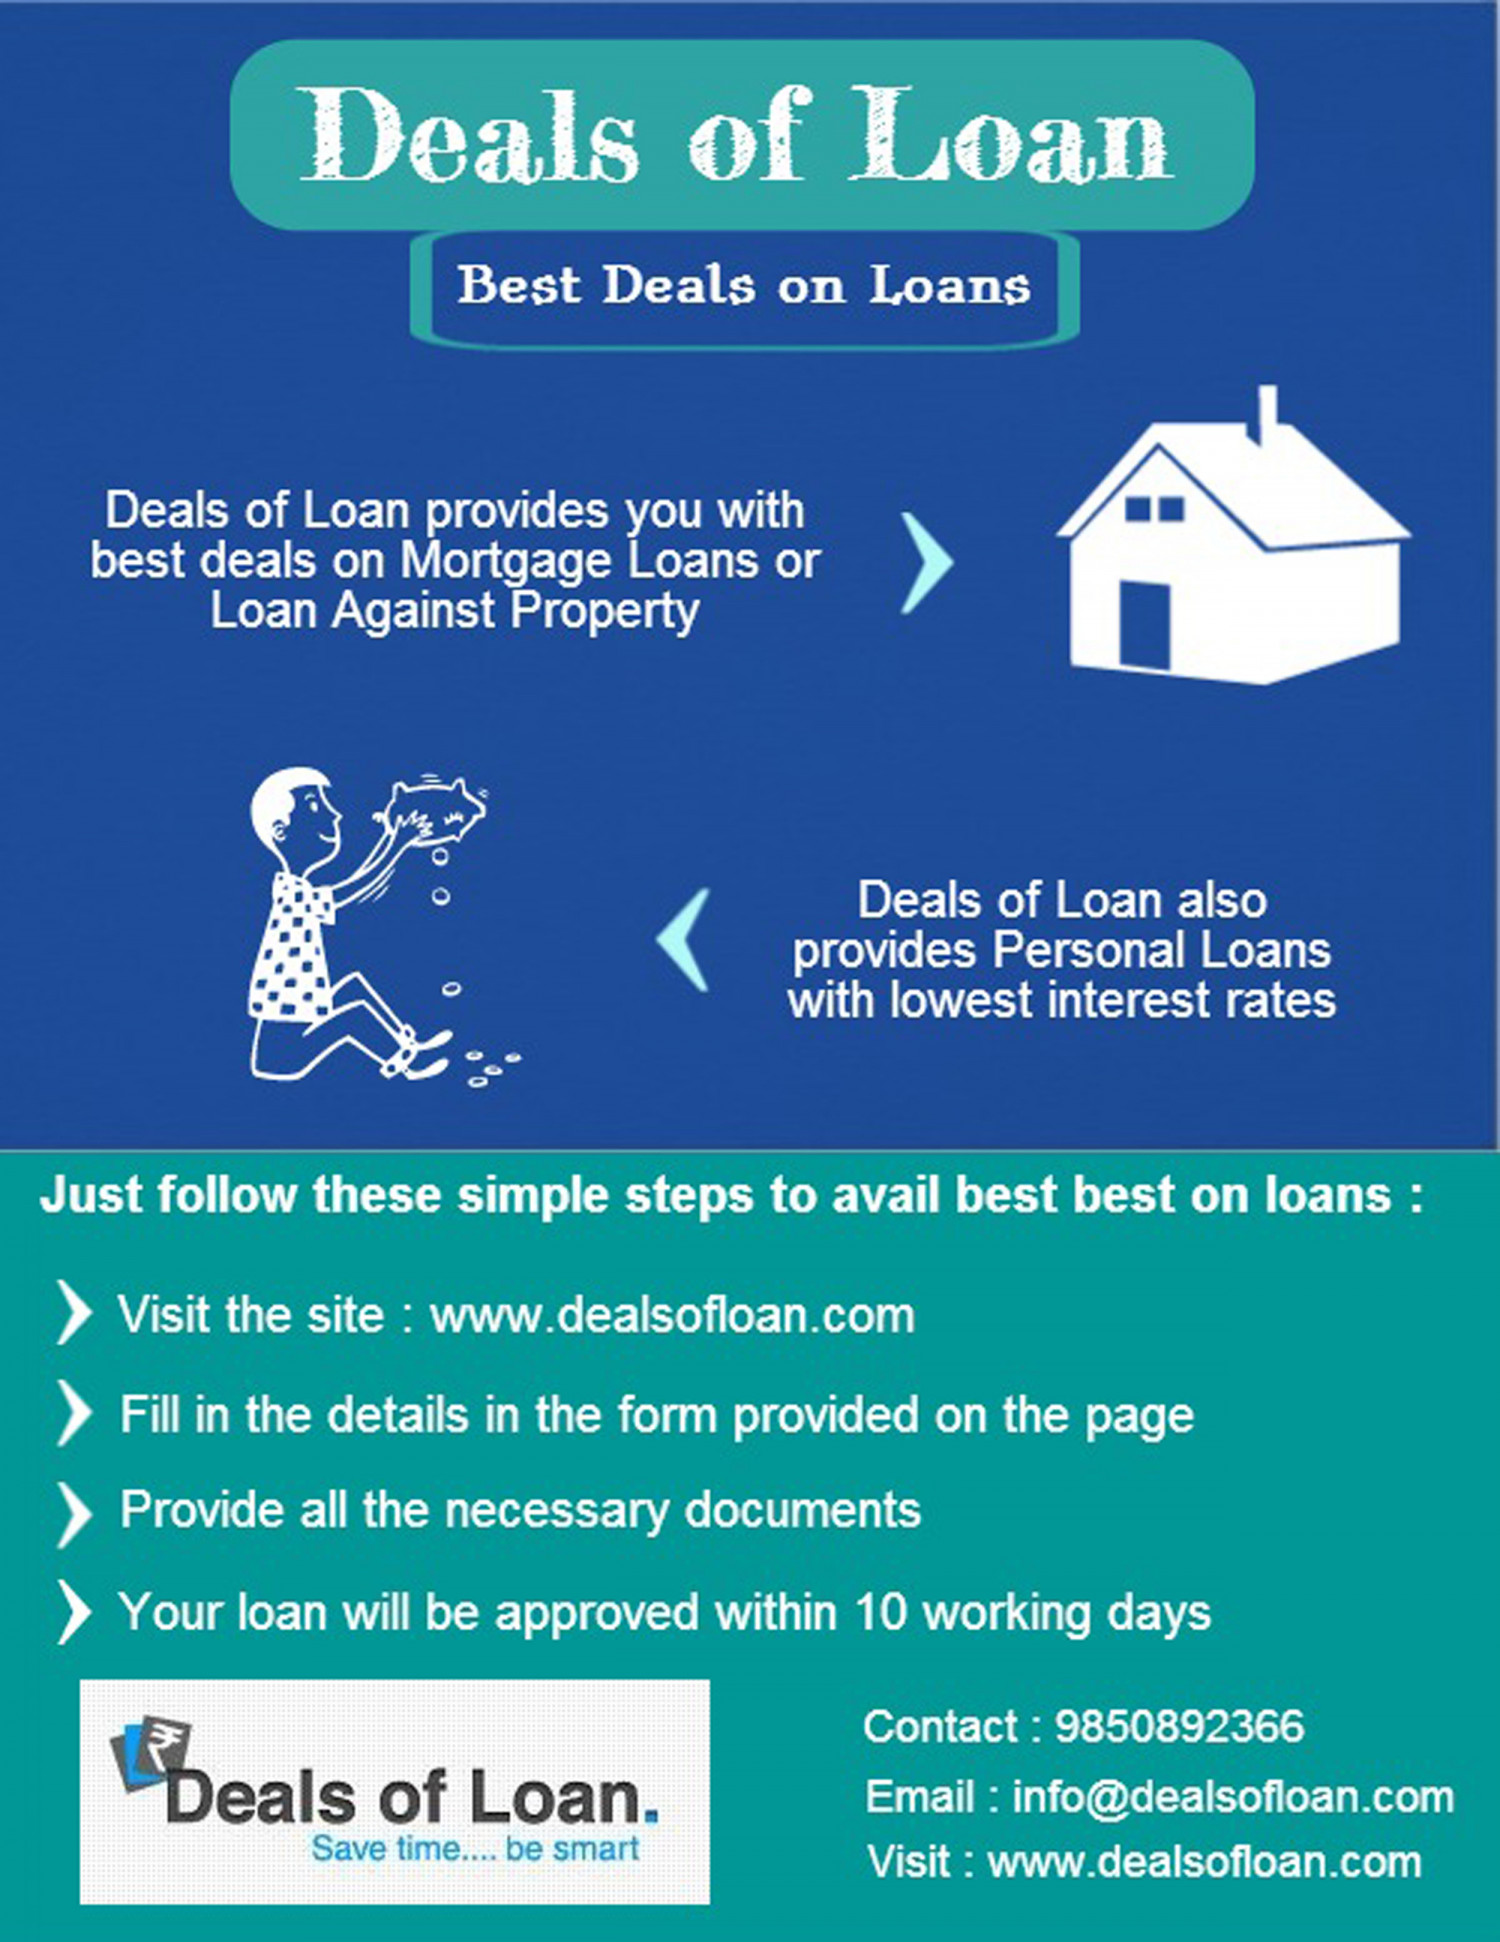 Personal and Mortgage Loans Deals - Deals of Loan Infographic